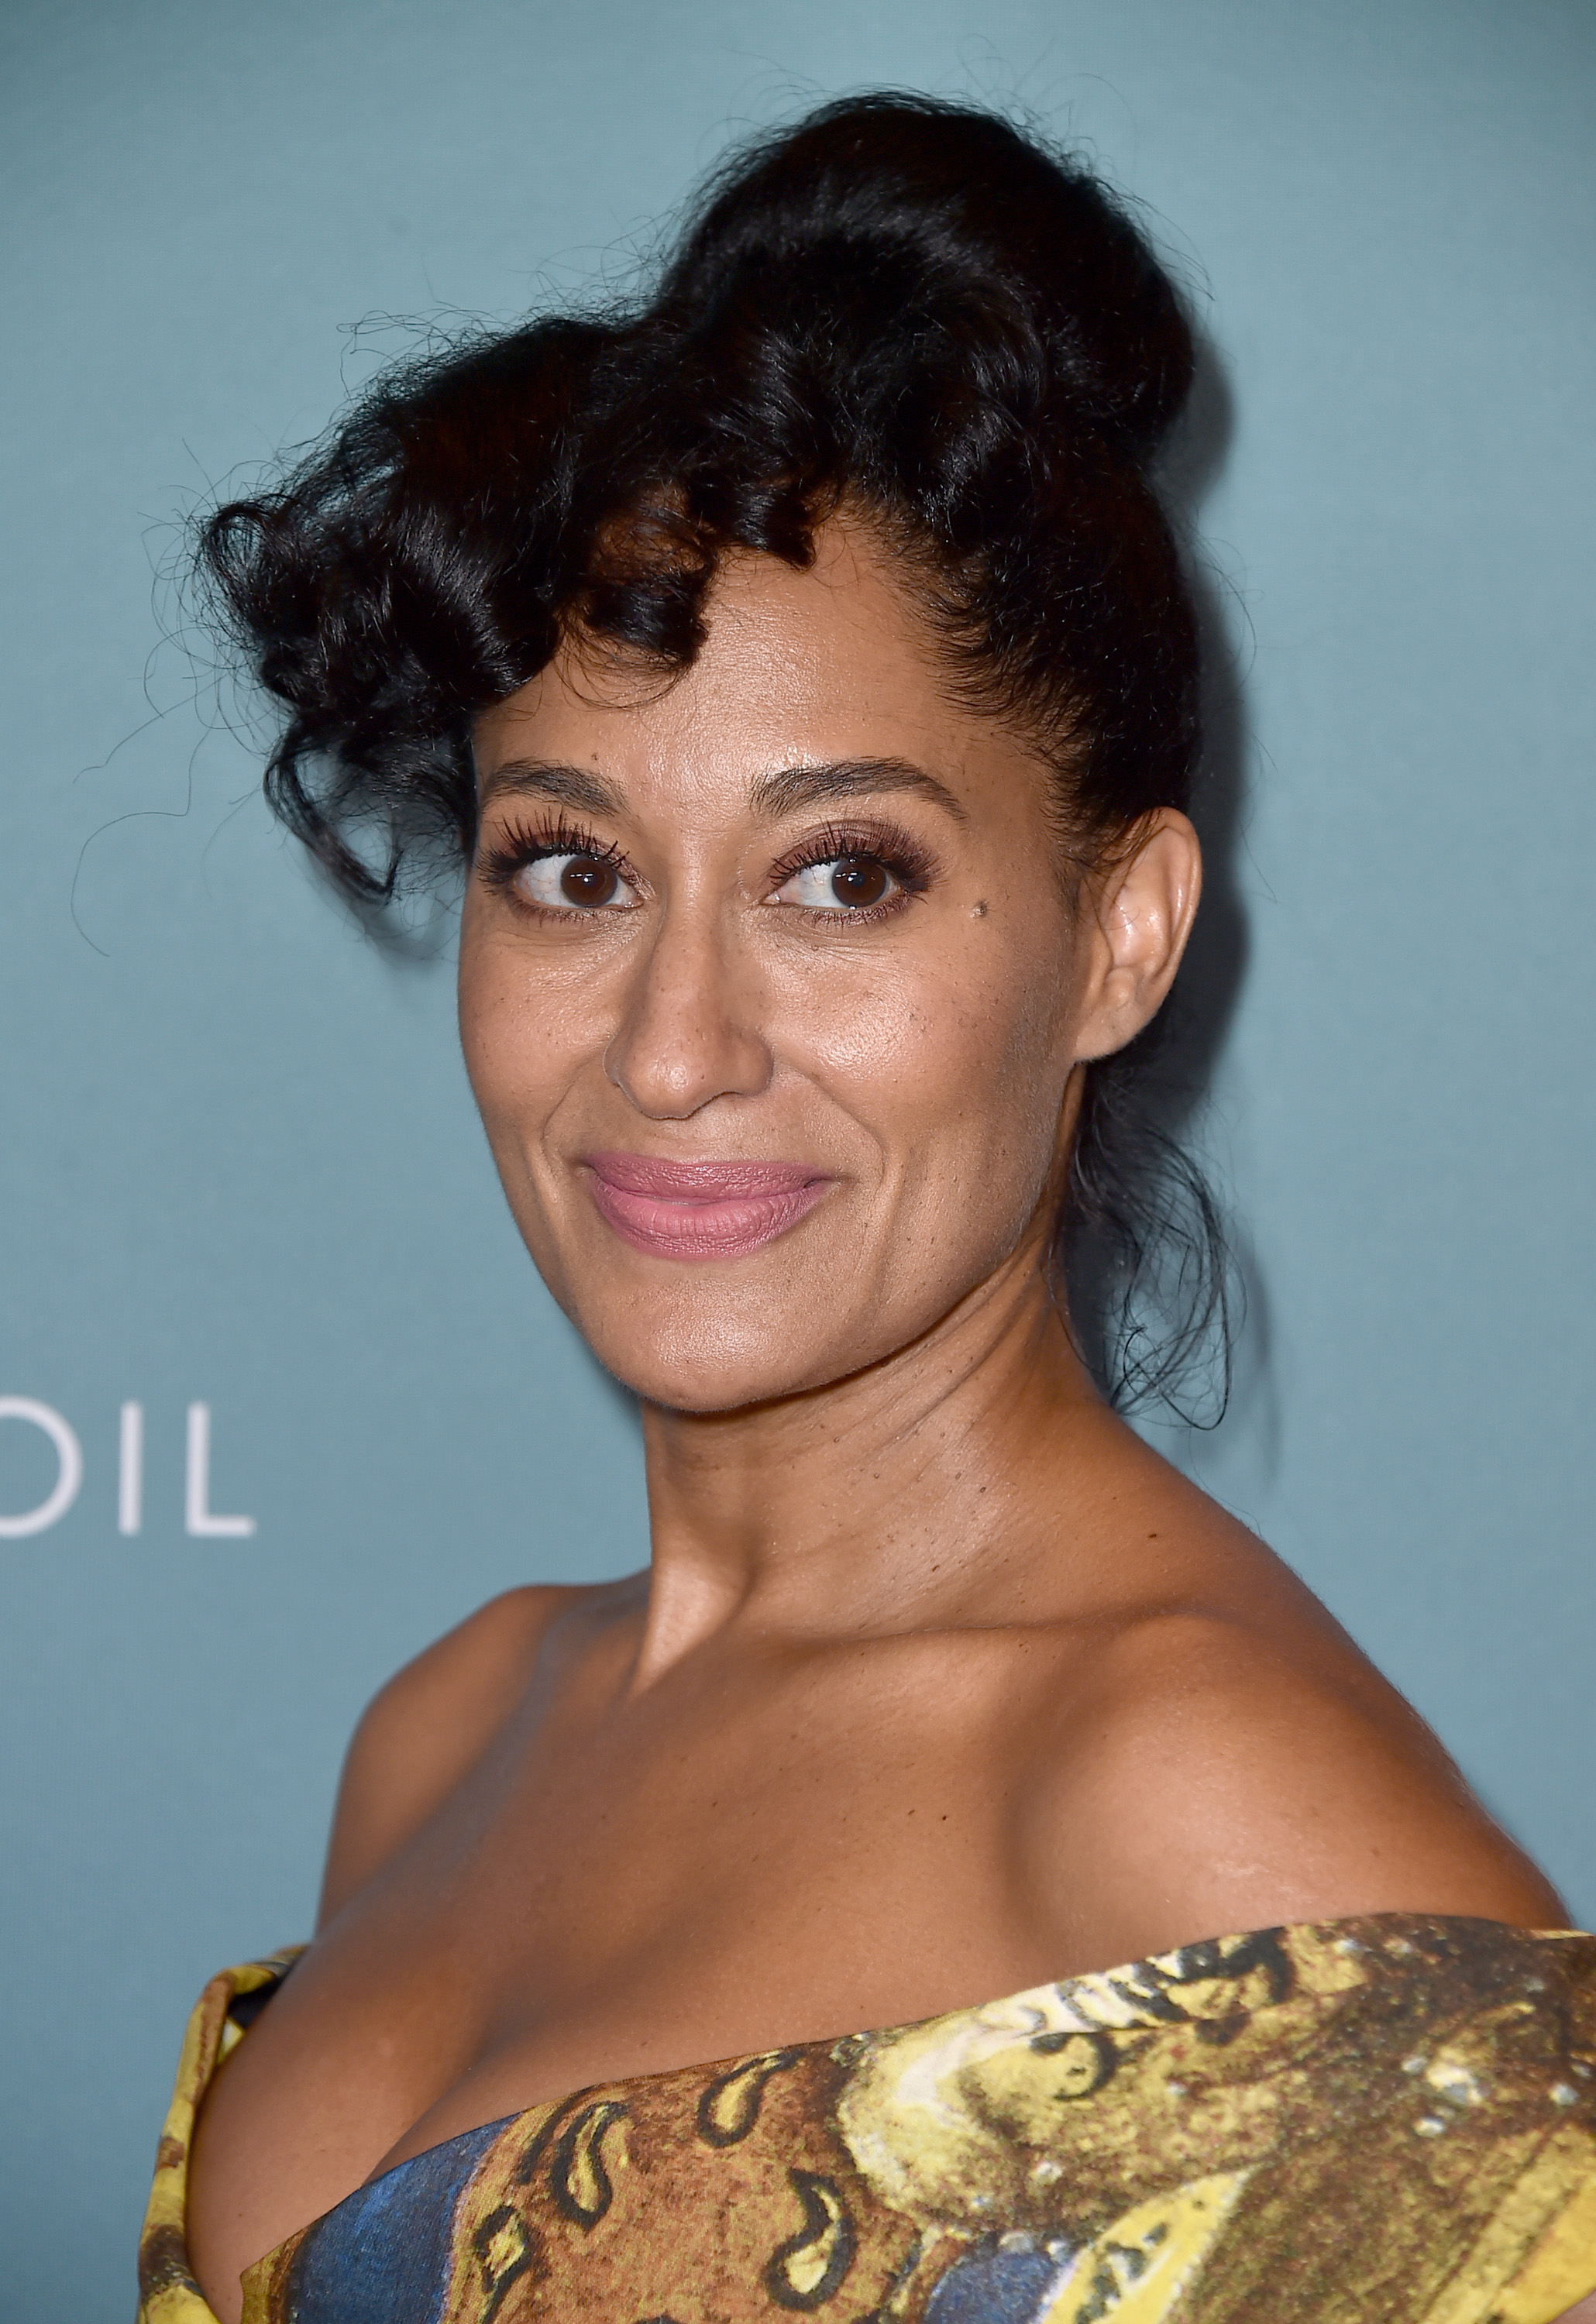 Tracee Ellis Ross arrives at the Variety Power of Women luncheon at the Beverly Wilshire hotel on Friday, Oct. 9, 2015, in Beverly Hills, Calif. (Photo by Jordan Strauss/Invision/AP)